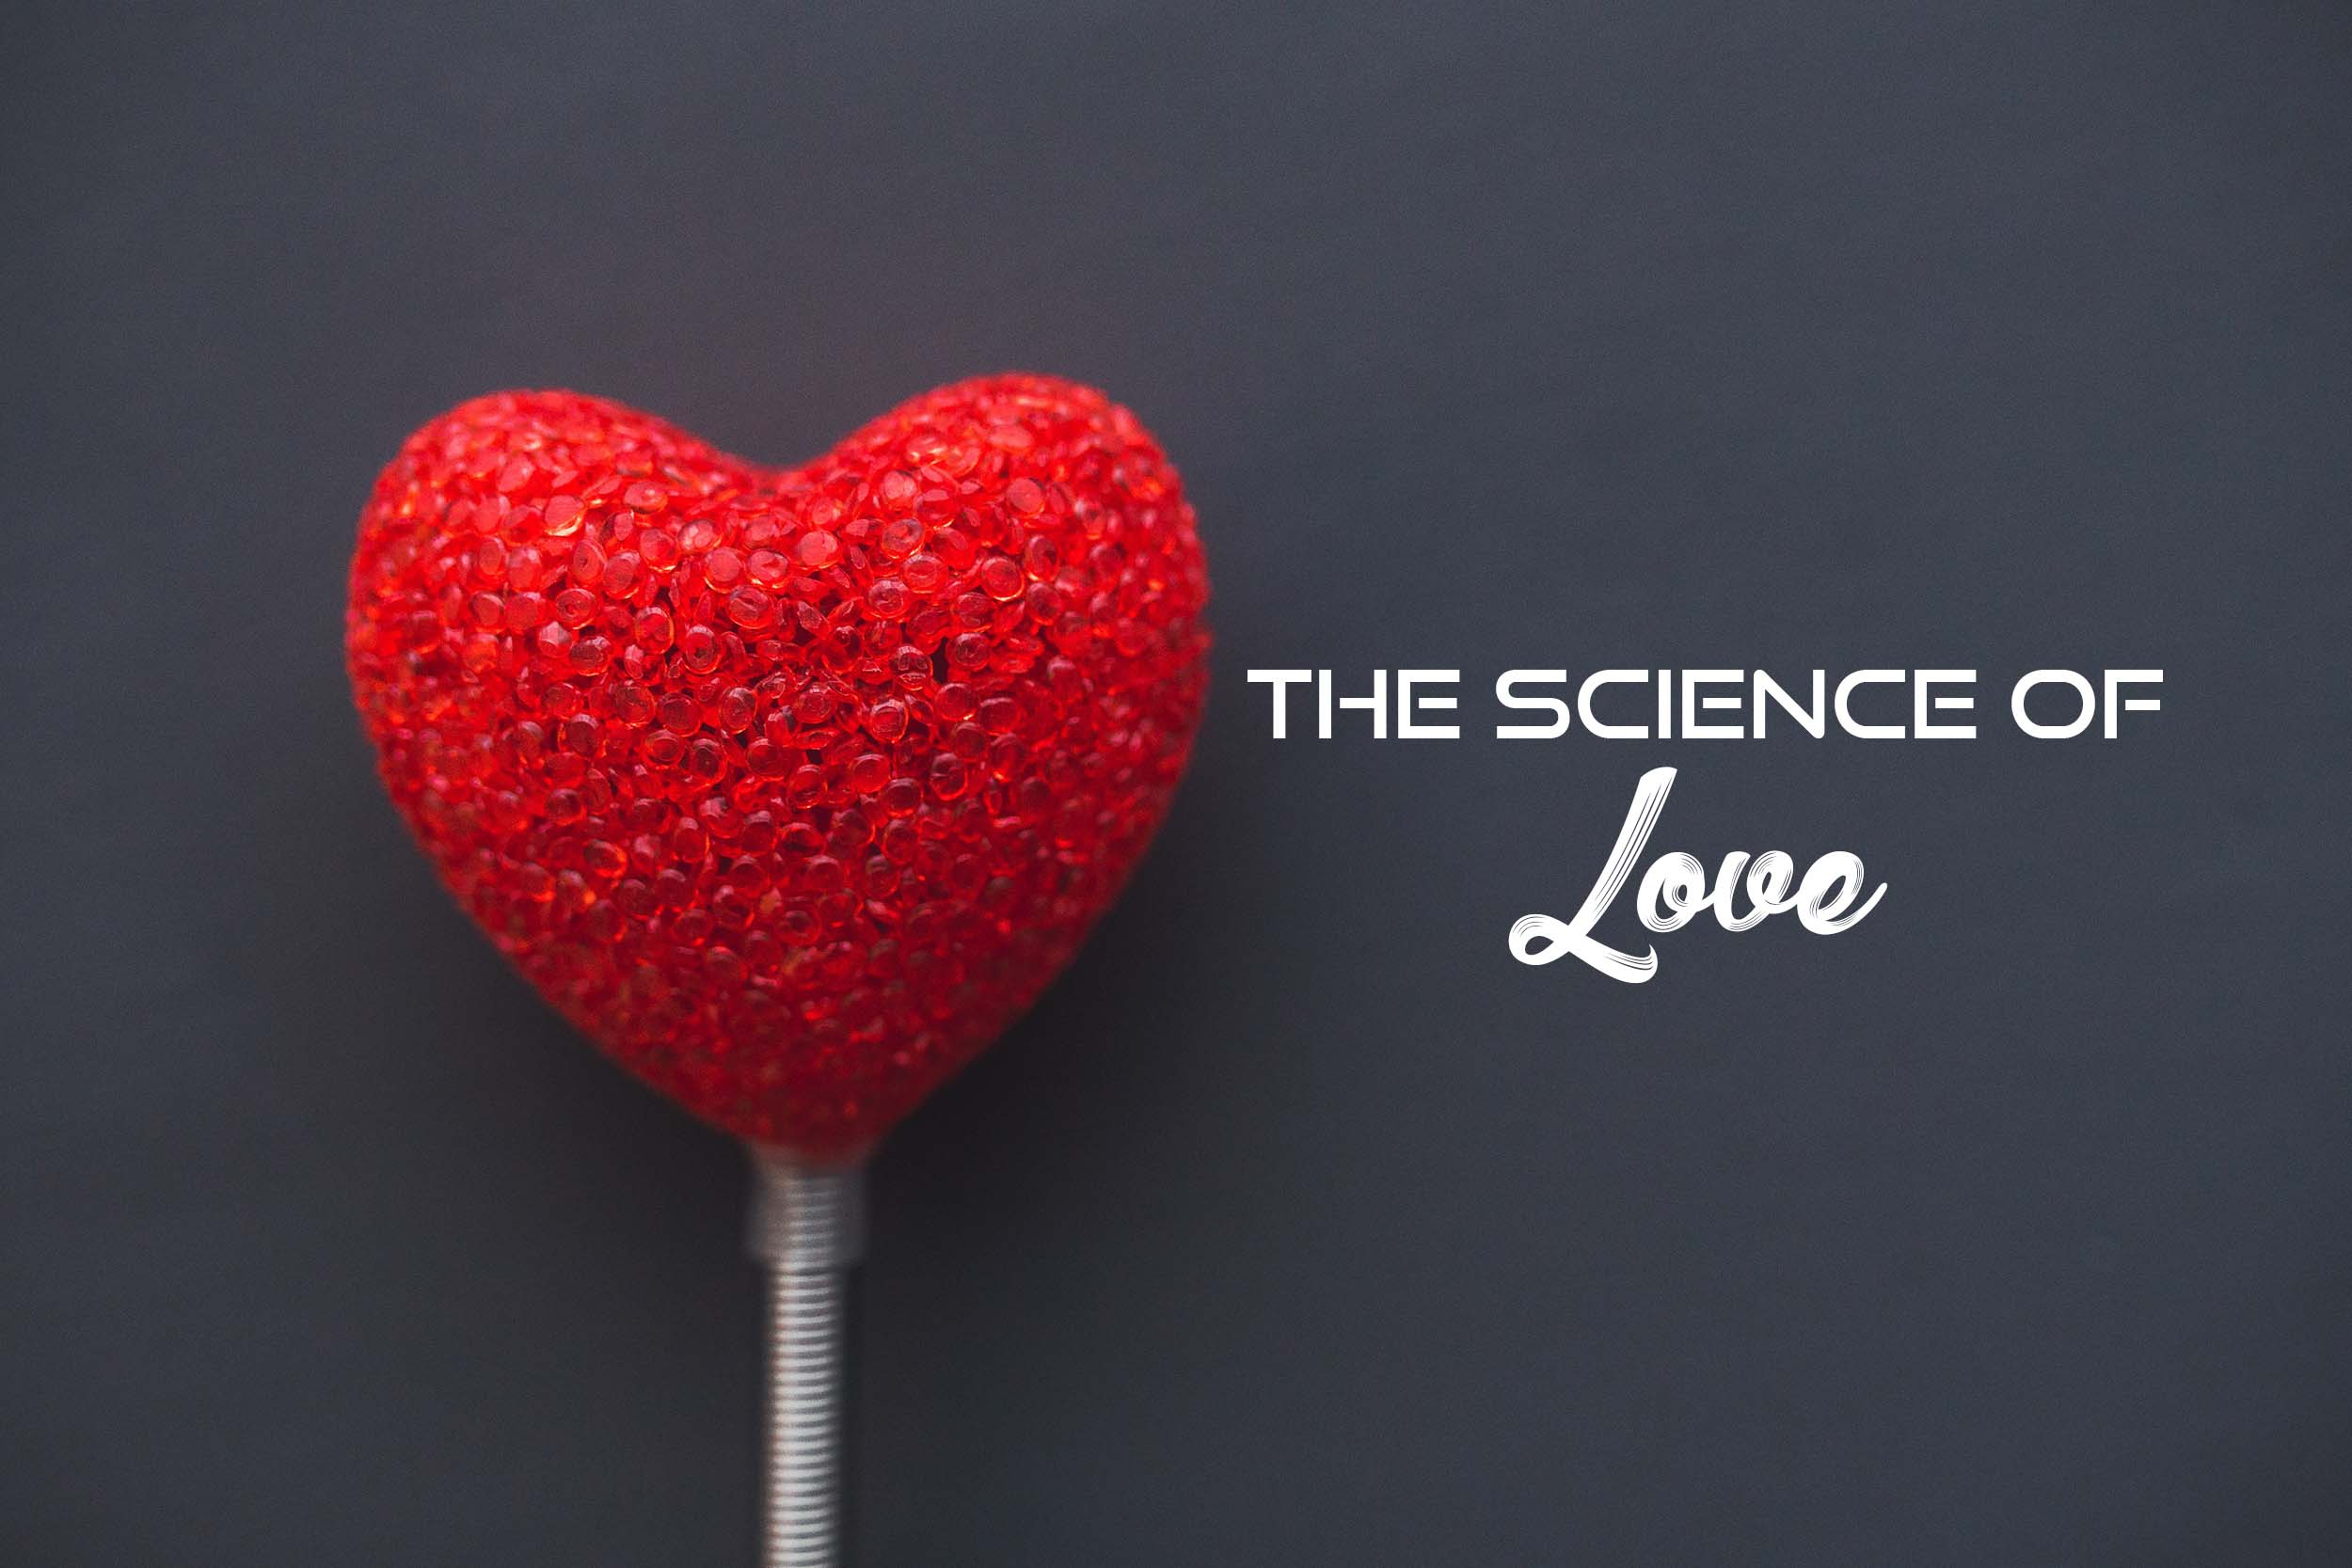 The Science of Love graphics